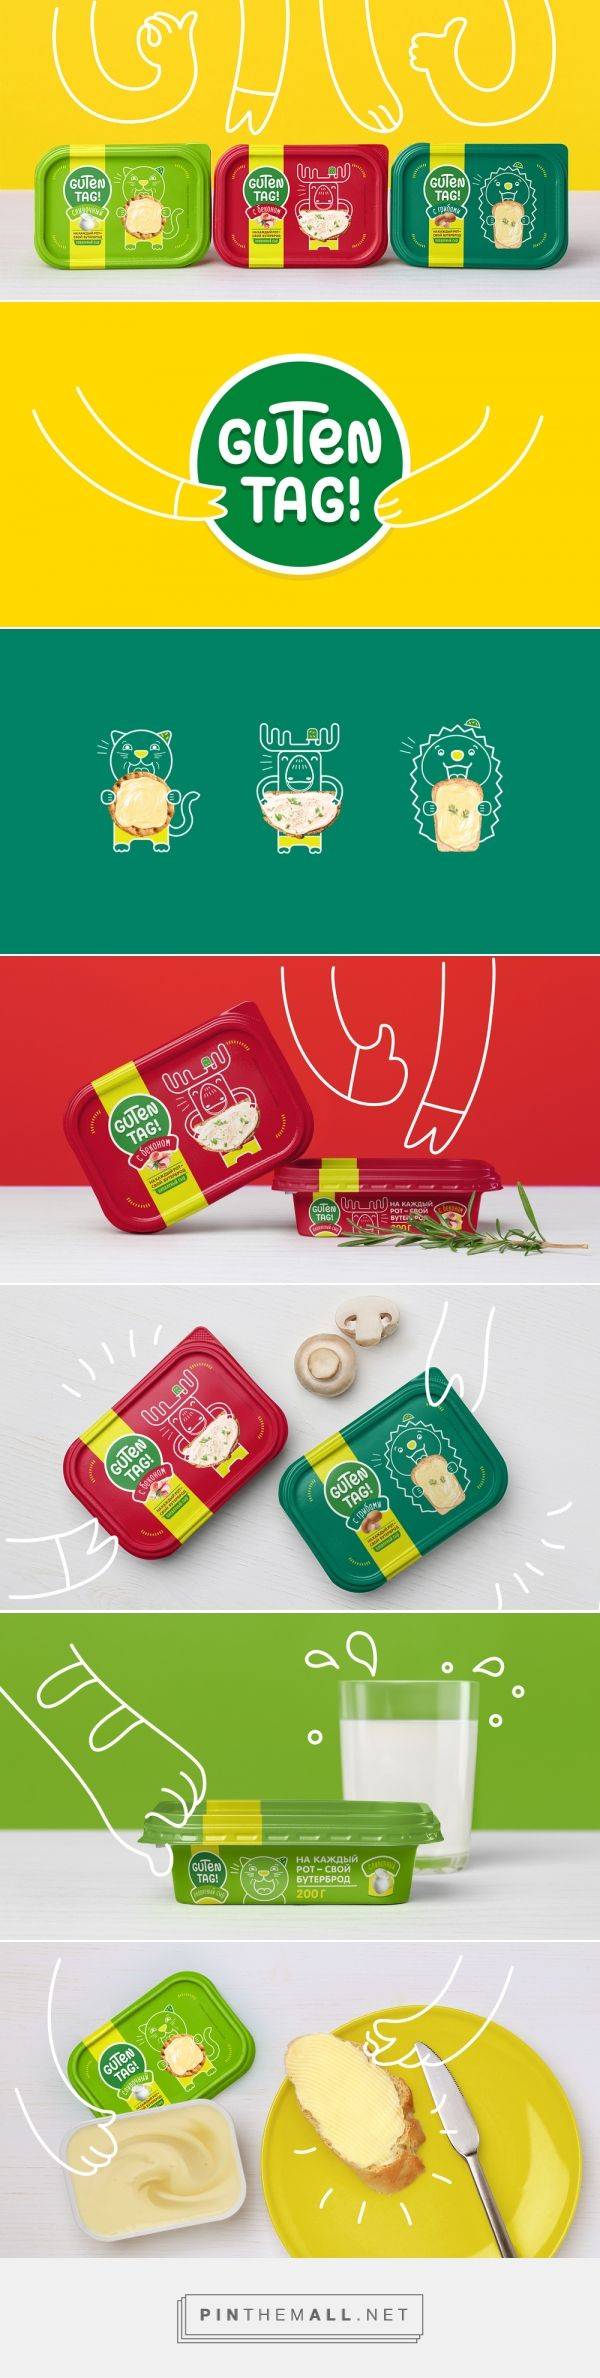 Guten Tag By Fabula Branding Via The Dieline Branding Packaging Curated By Packaging Diva P Graphic Design Packaging Brand Packaging Food Packaging Design